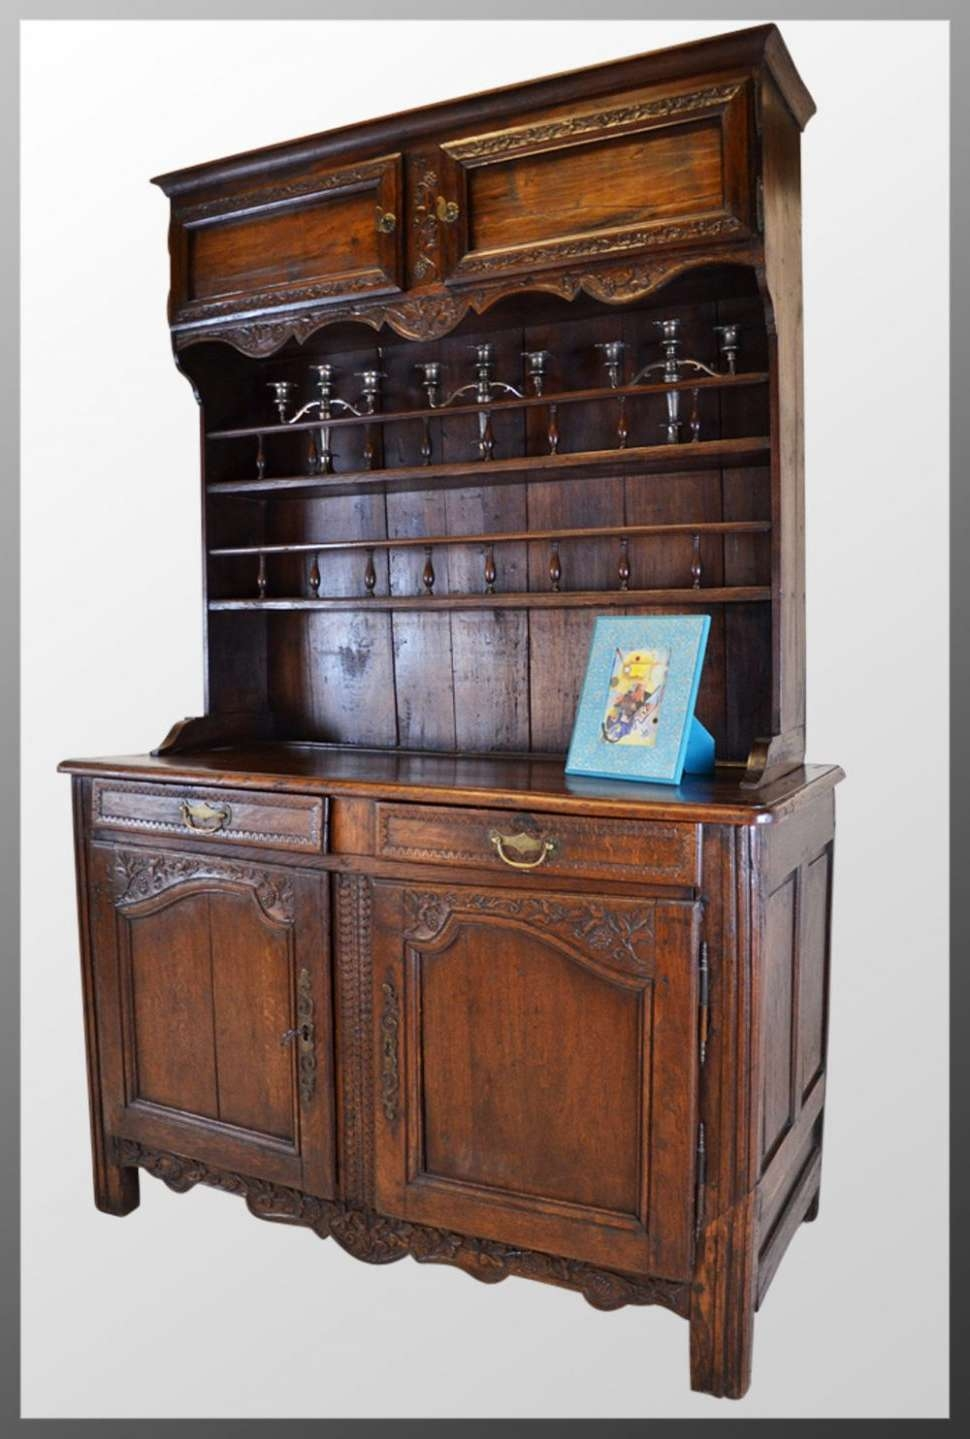 Kitchen Cabinet : Dining Room Sideboard Hutches And Buffets Inside Sideboards And Hutches (View 11 of 20)